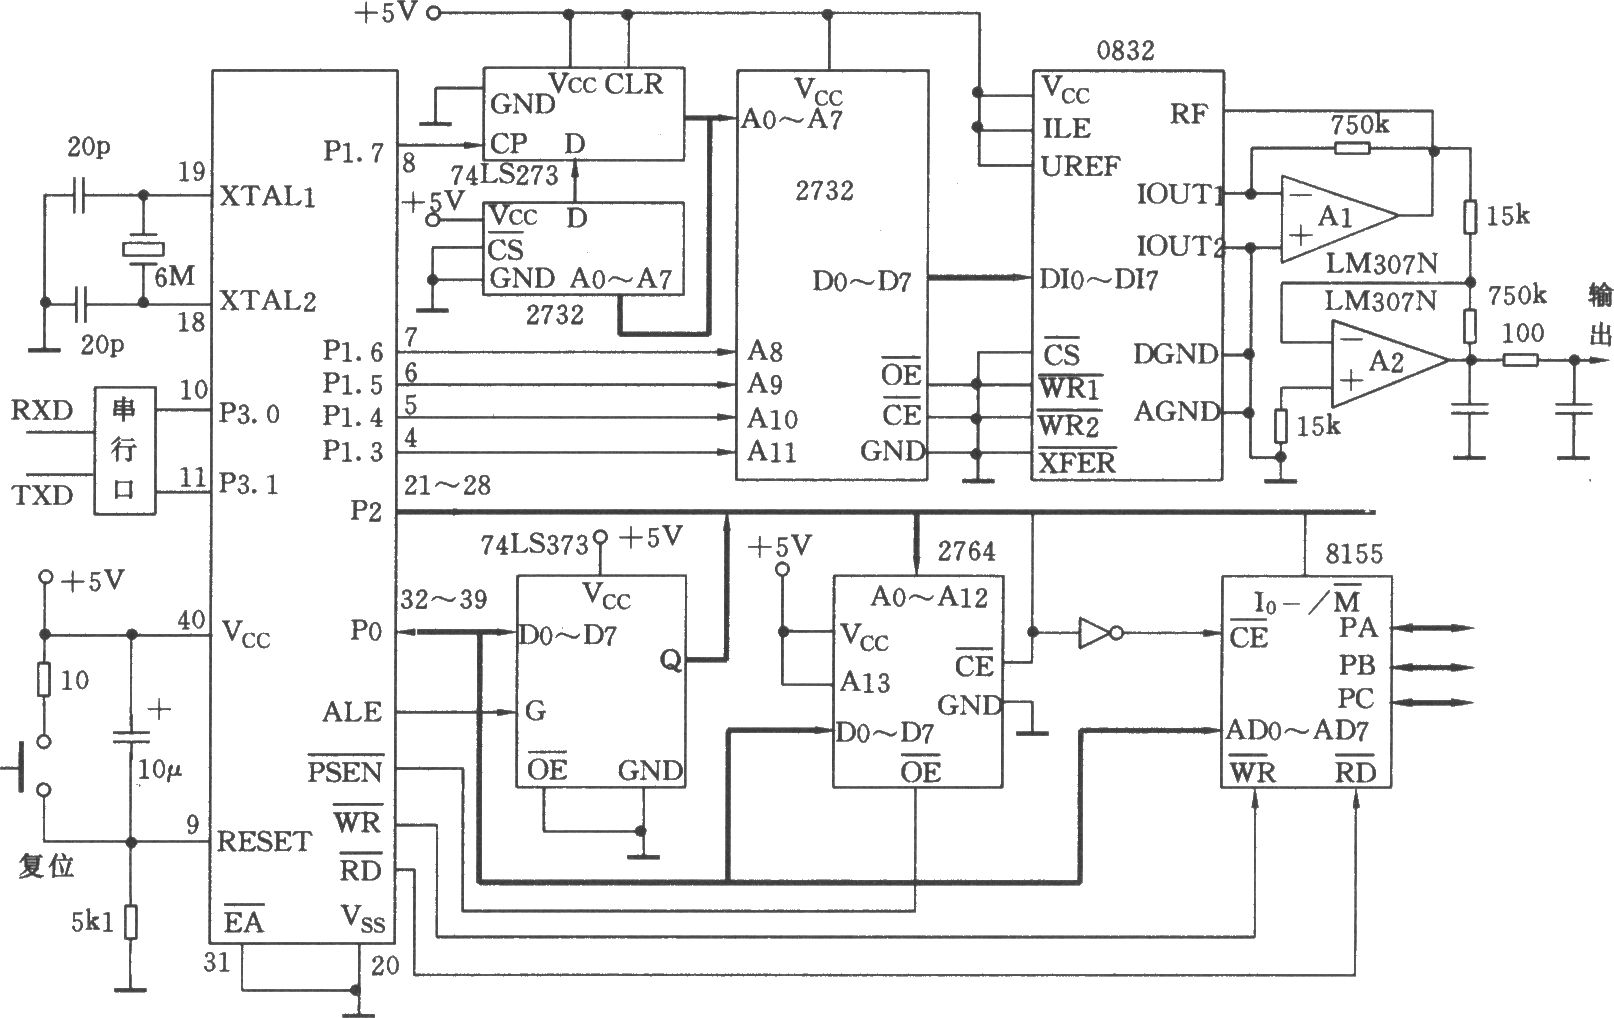 programmable signal generator composed of 8031 scm - signal processing